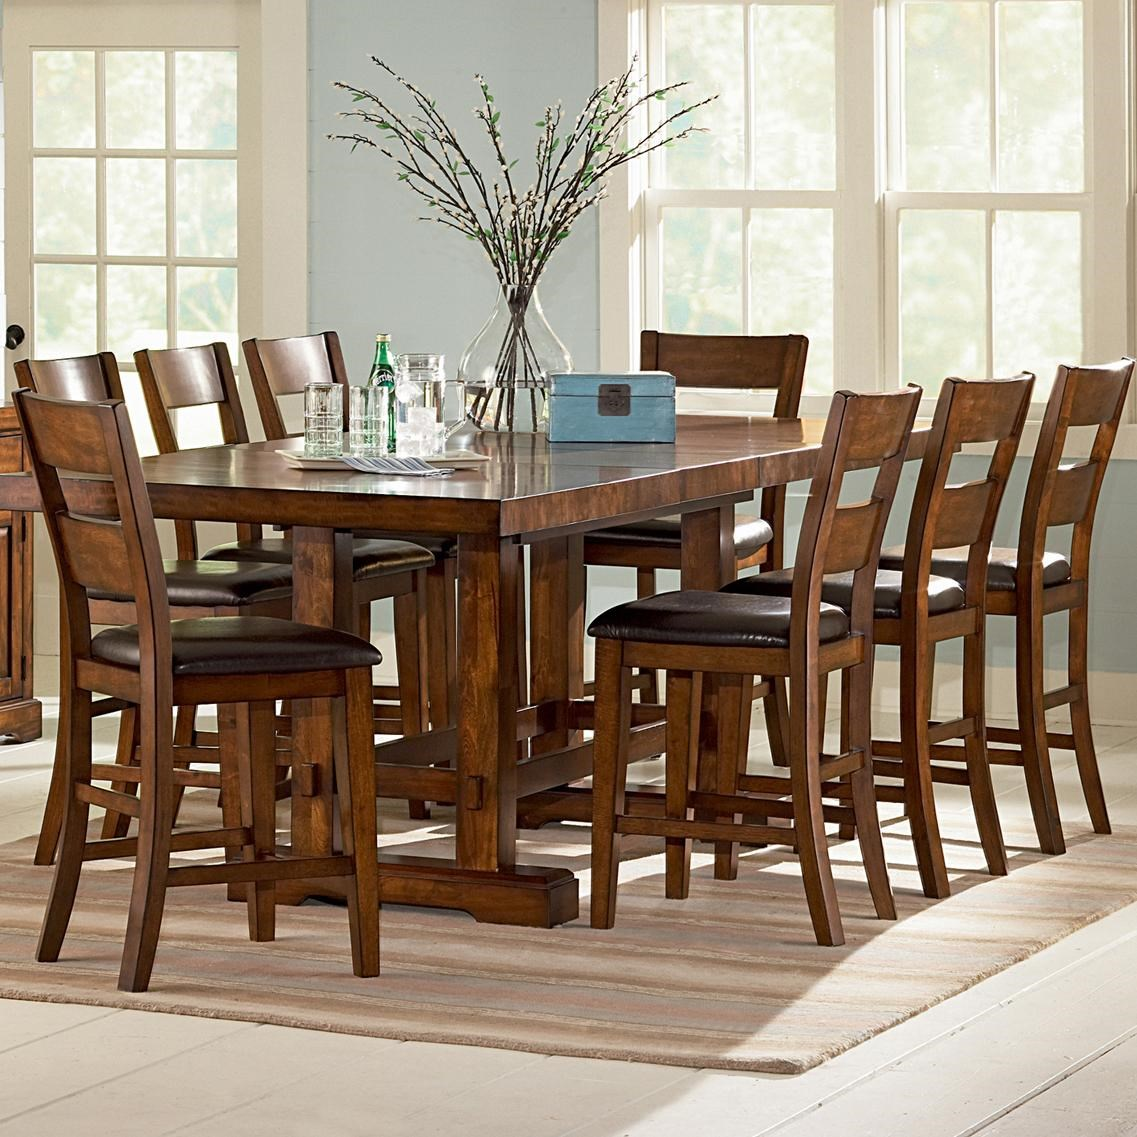 Delicieux Steve Silver ZappaCounter Height Table U0026 Chair Set ...